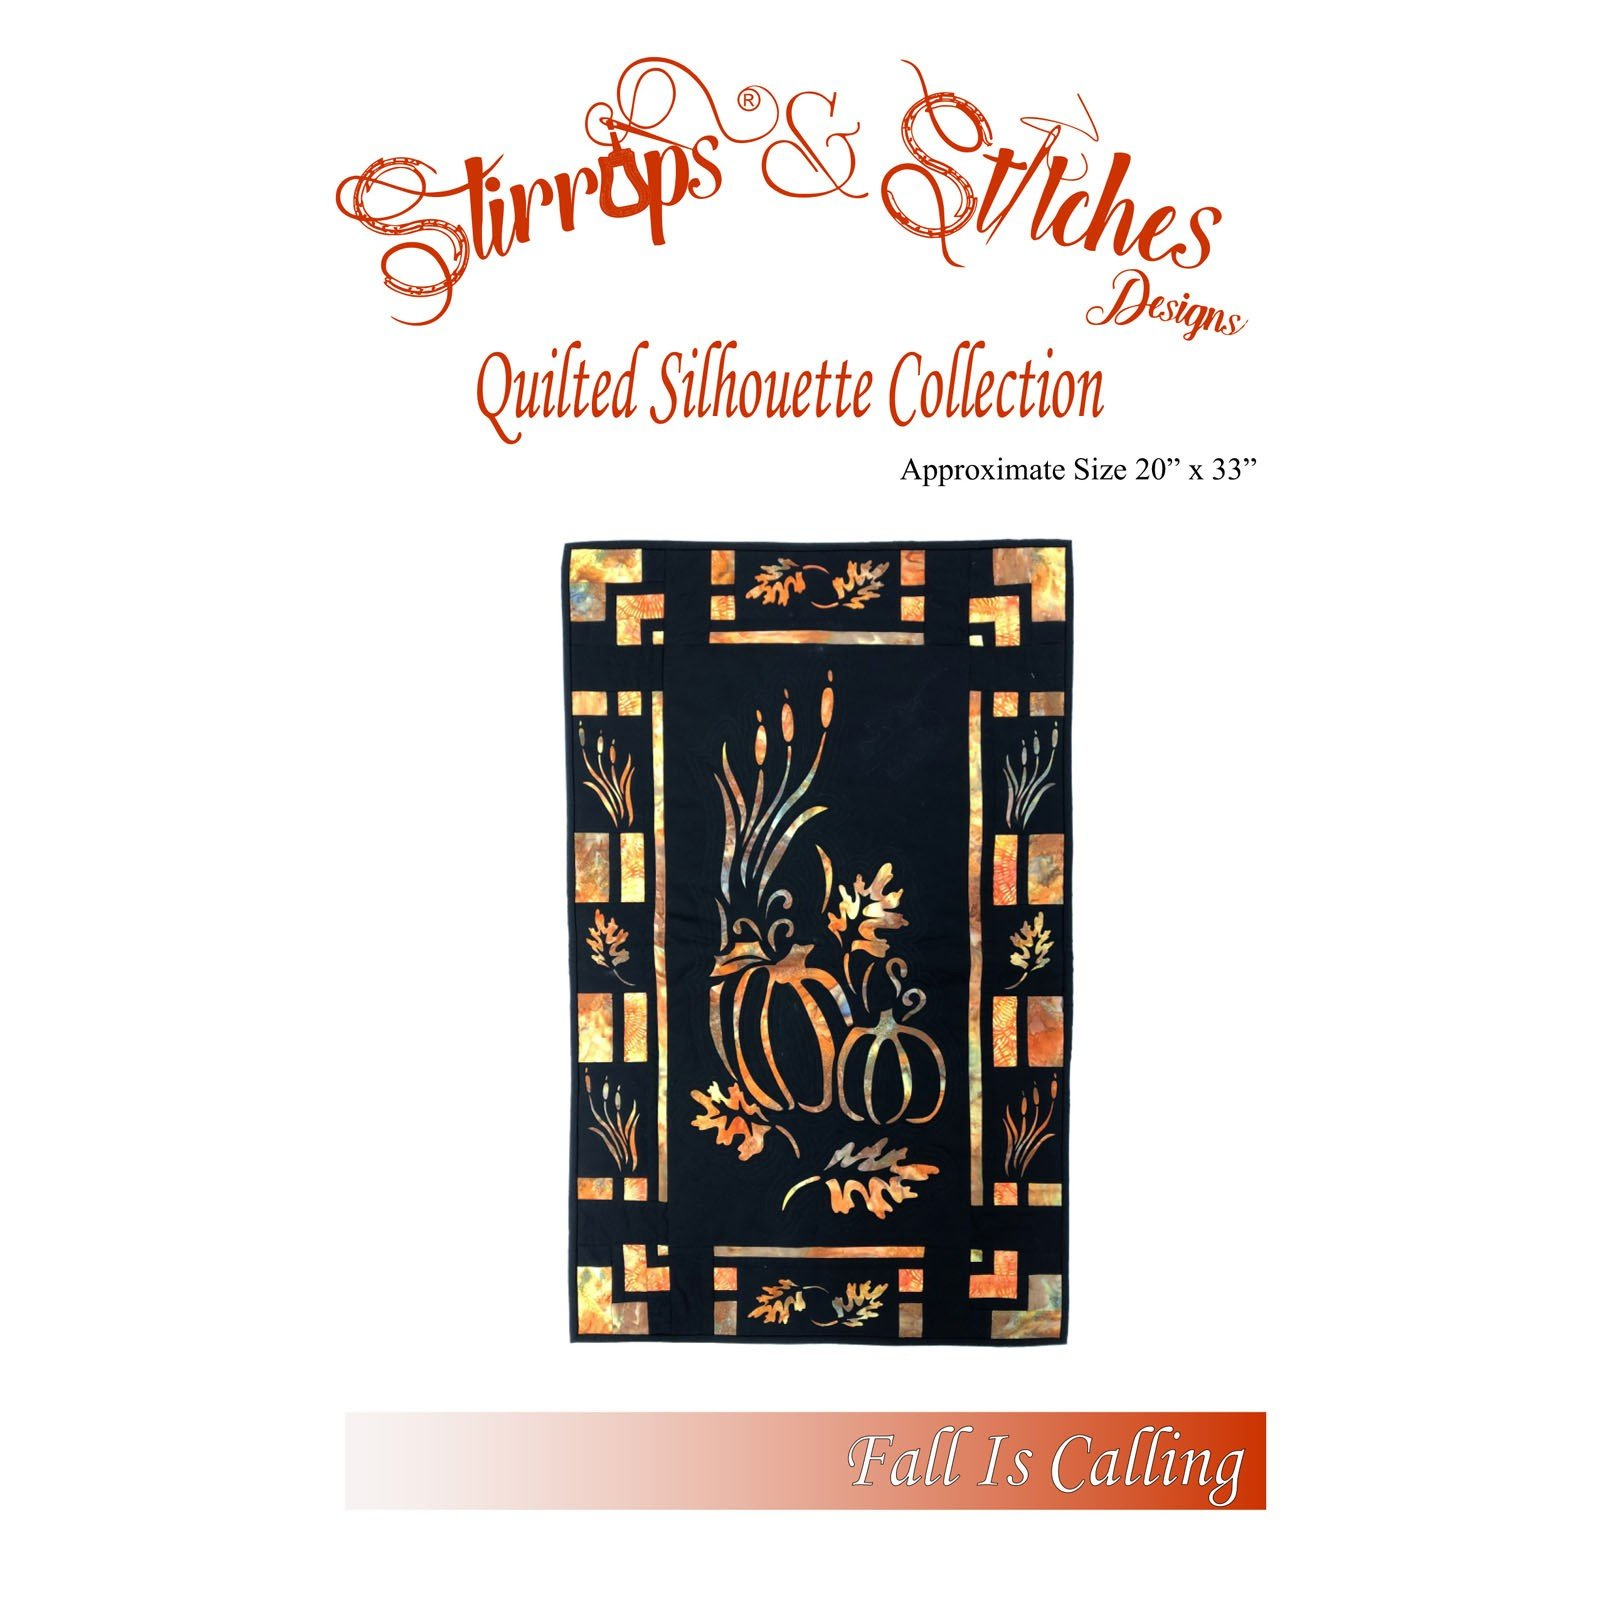 From Stirrups /& Stitches FALL IS CALLING SILHOUETTE COLLECTION APPLIQUE PATTERN